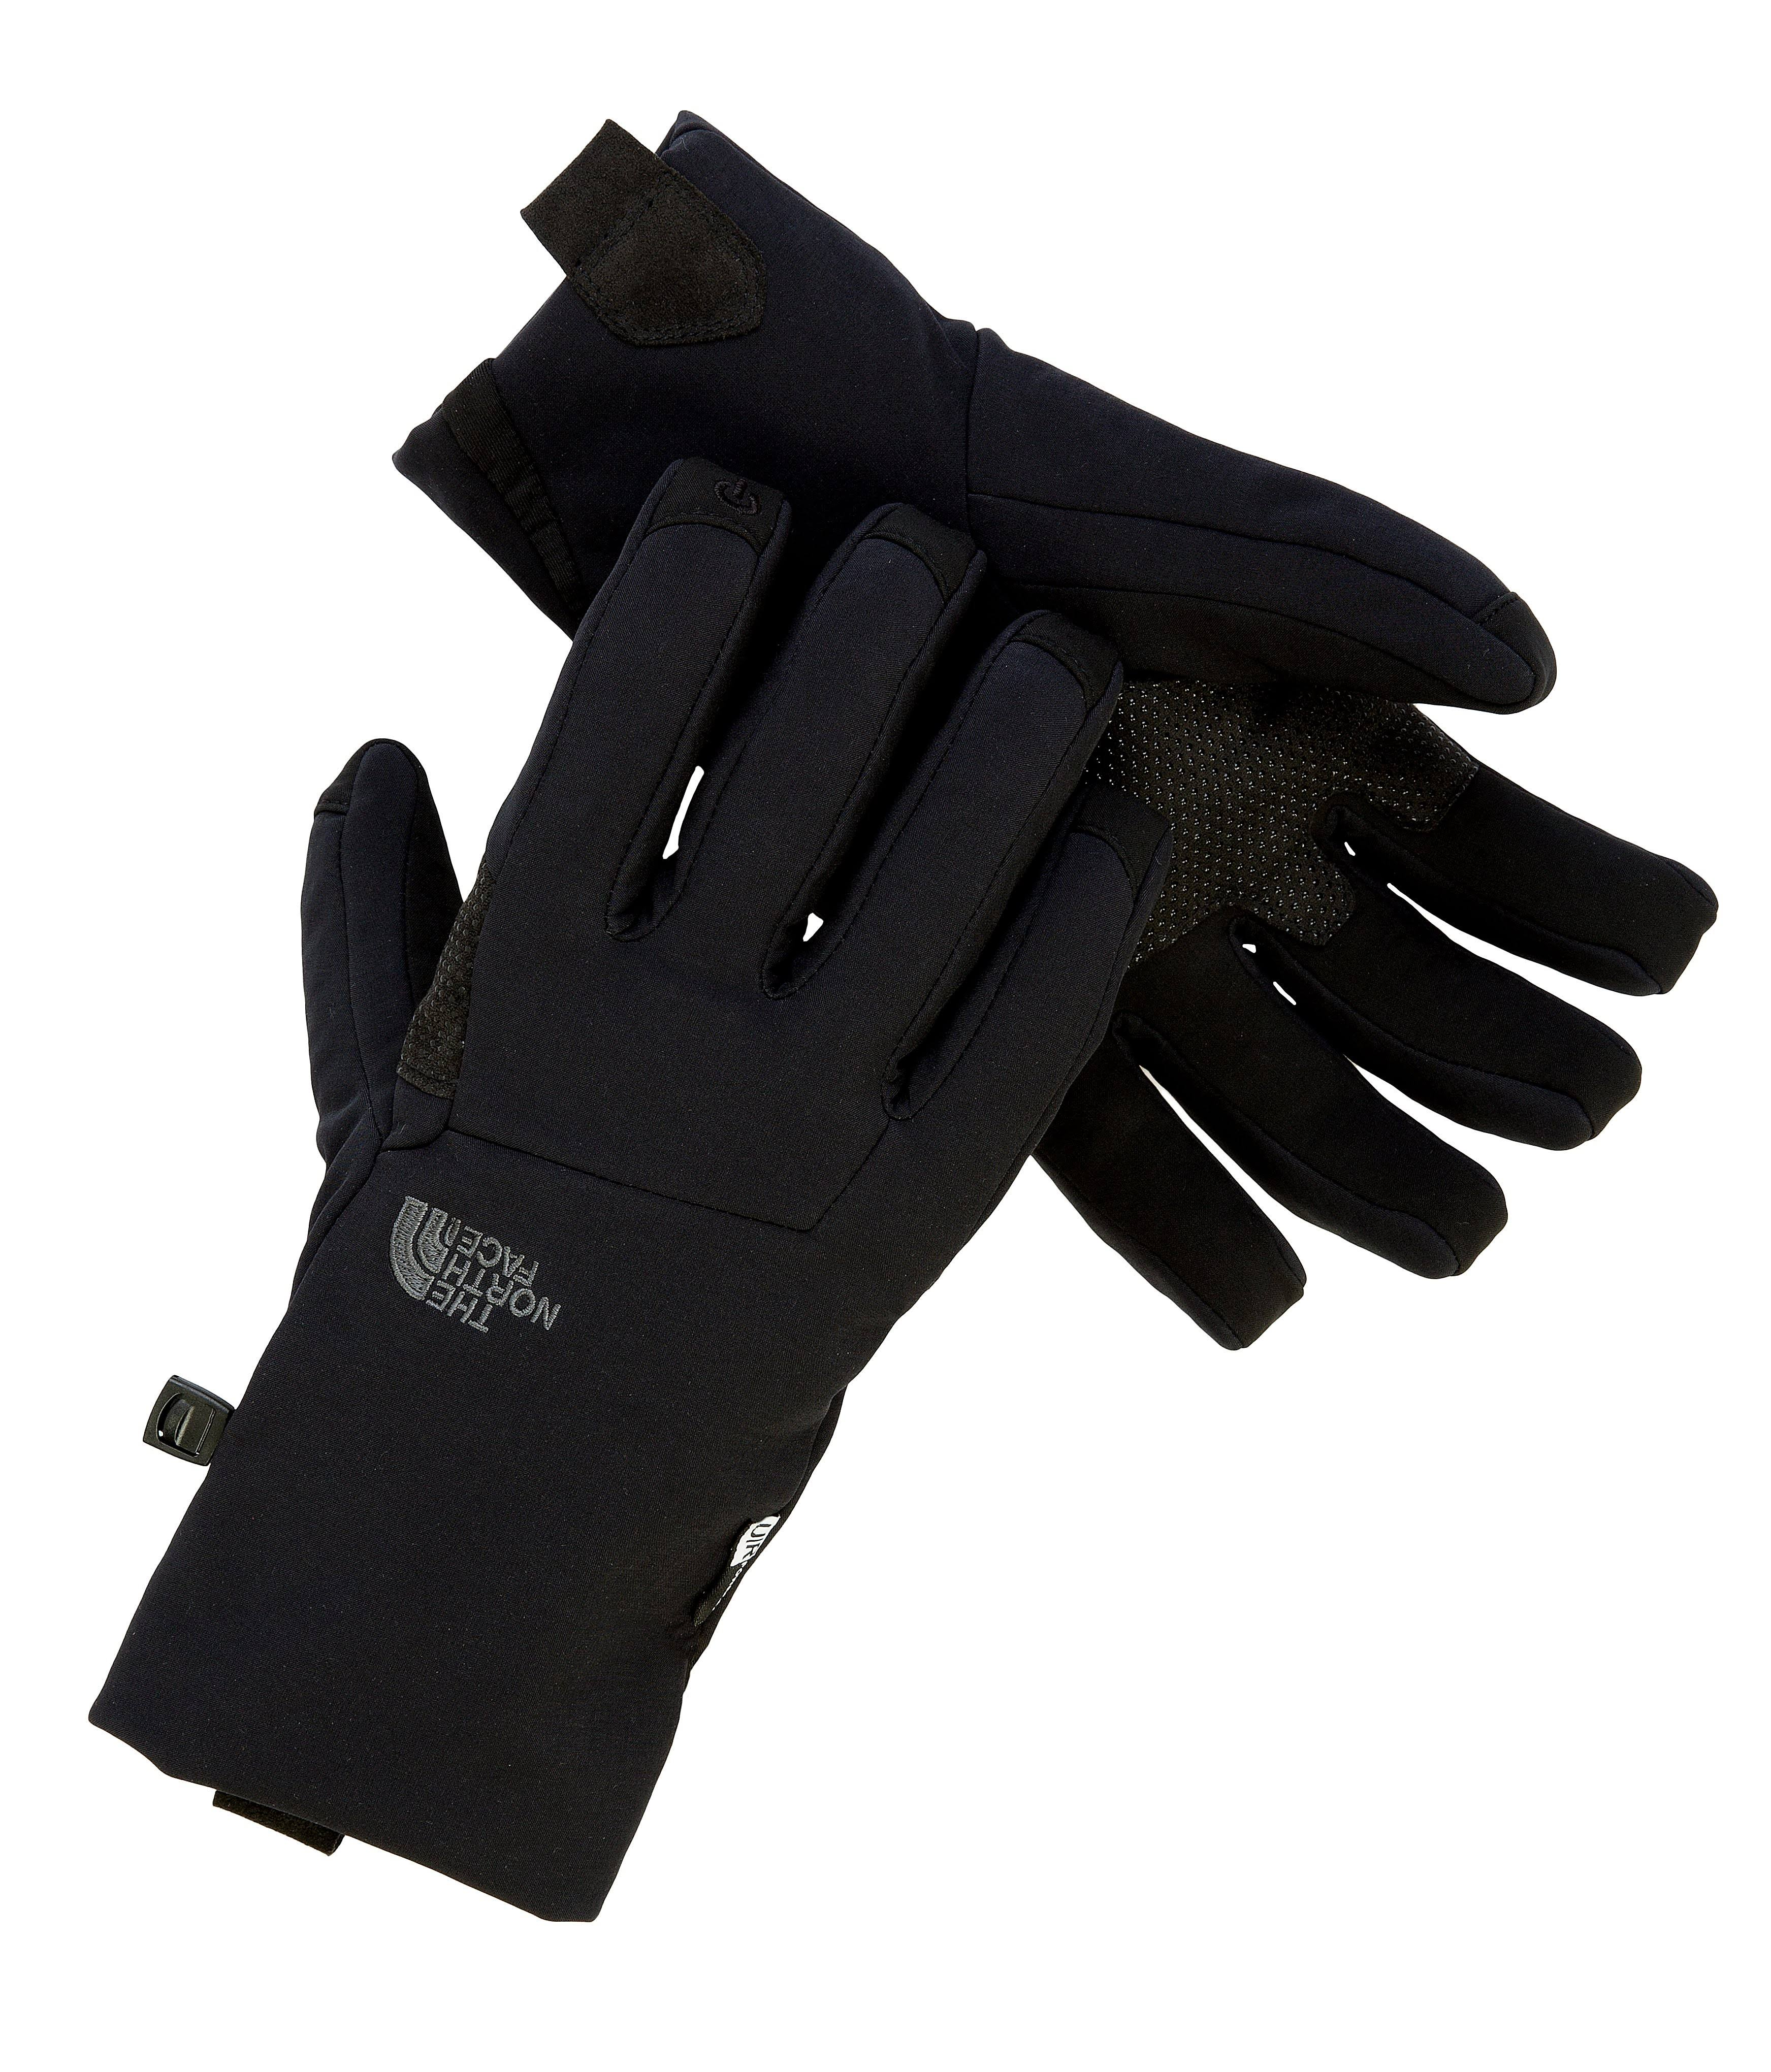 The North Face Apex Etip Gloves - Black, Large